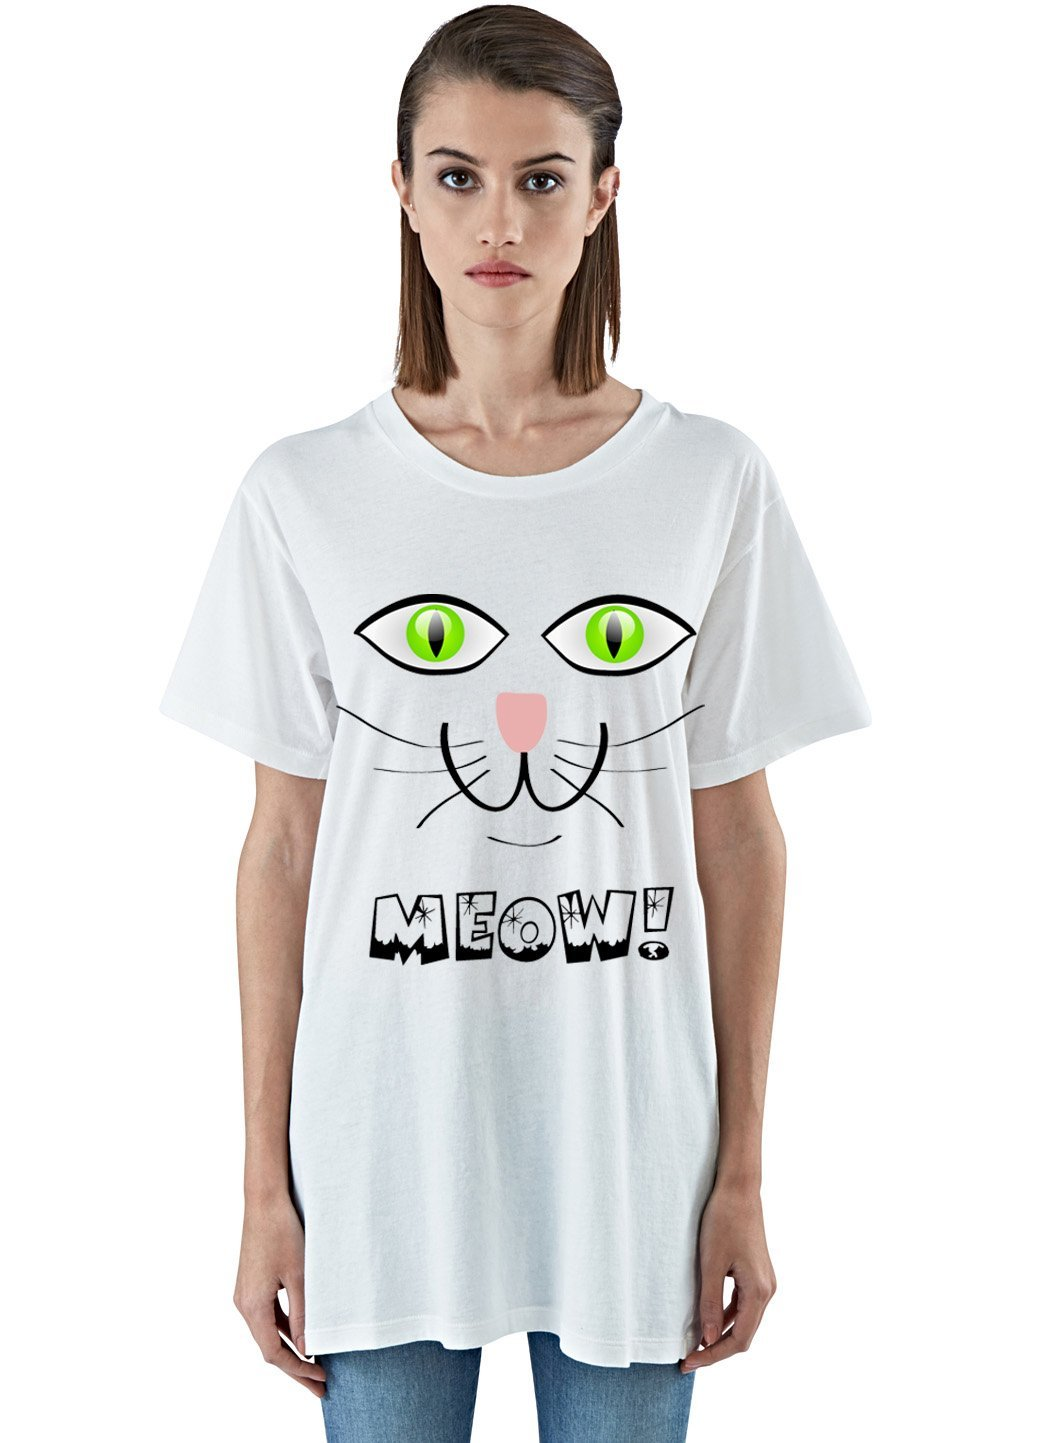 """MEOW"" Short-Sleeve Unisex T-Shirt, Smiling Cat Face! - FabulousLife"